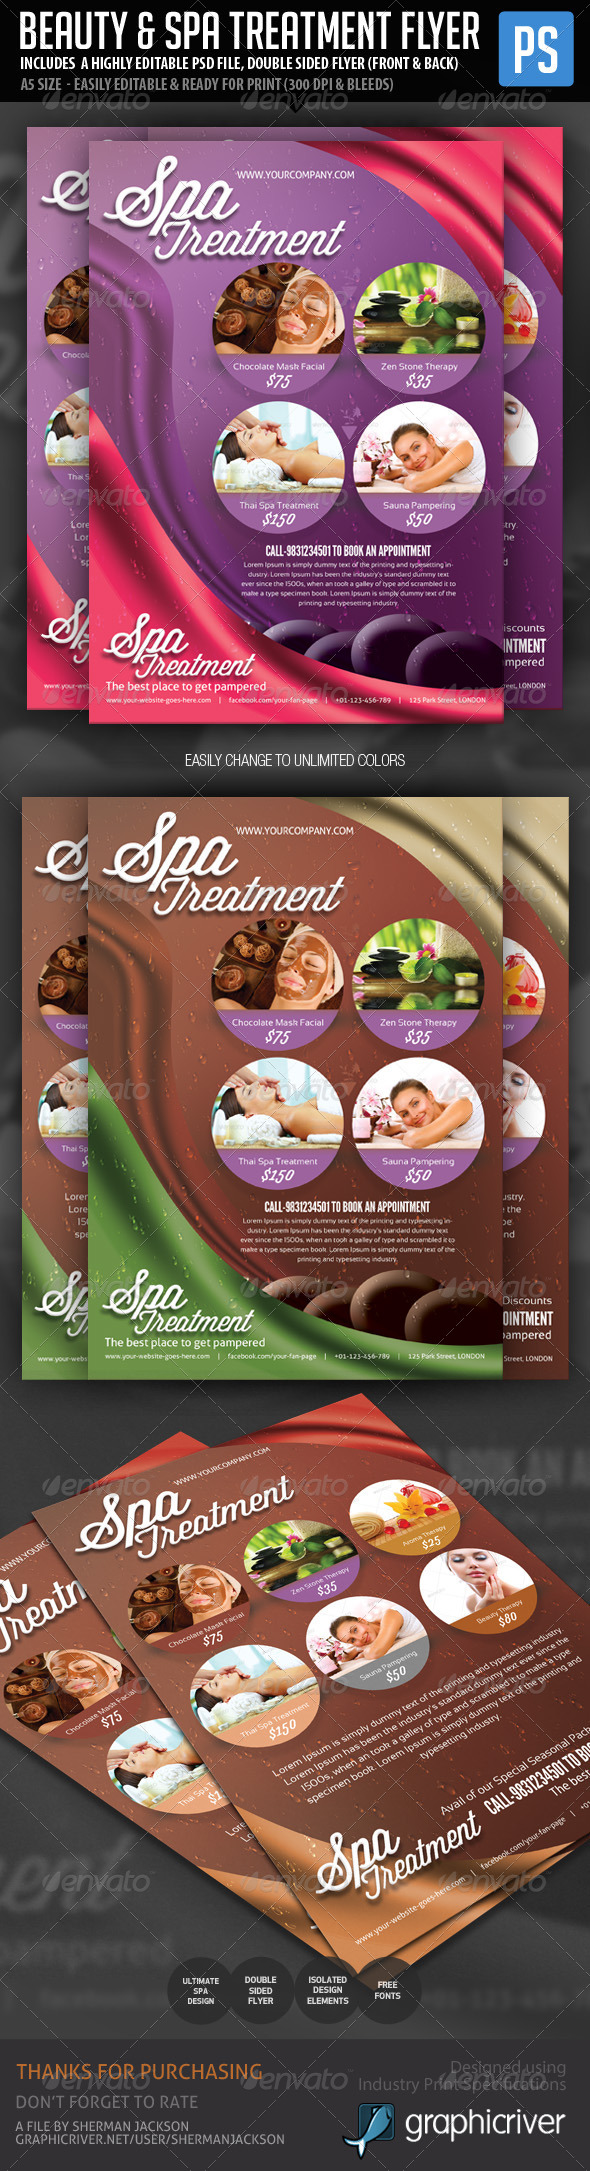 GraphicRiver Beauty & Spa Treatment Flyer 6086716